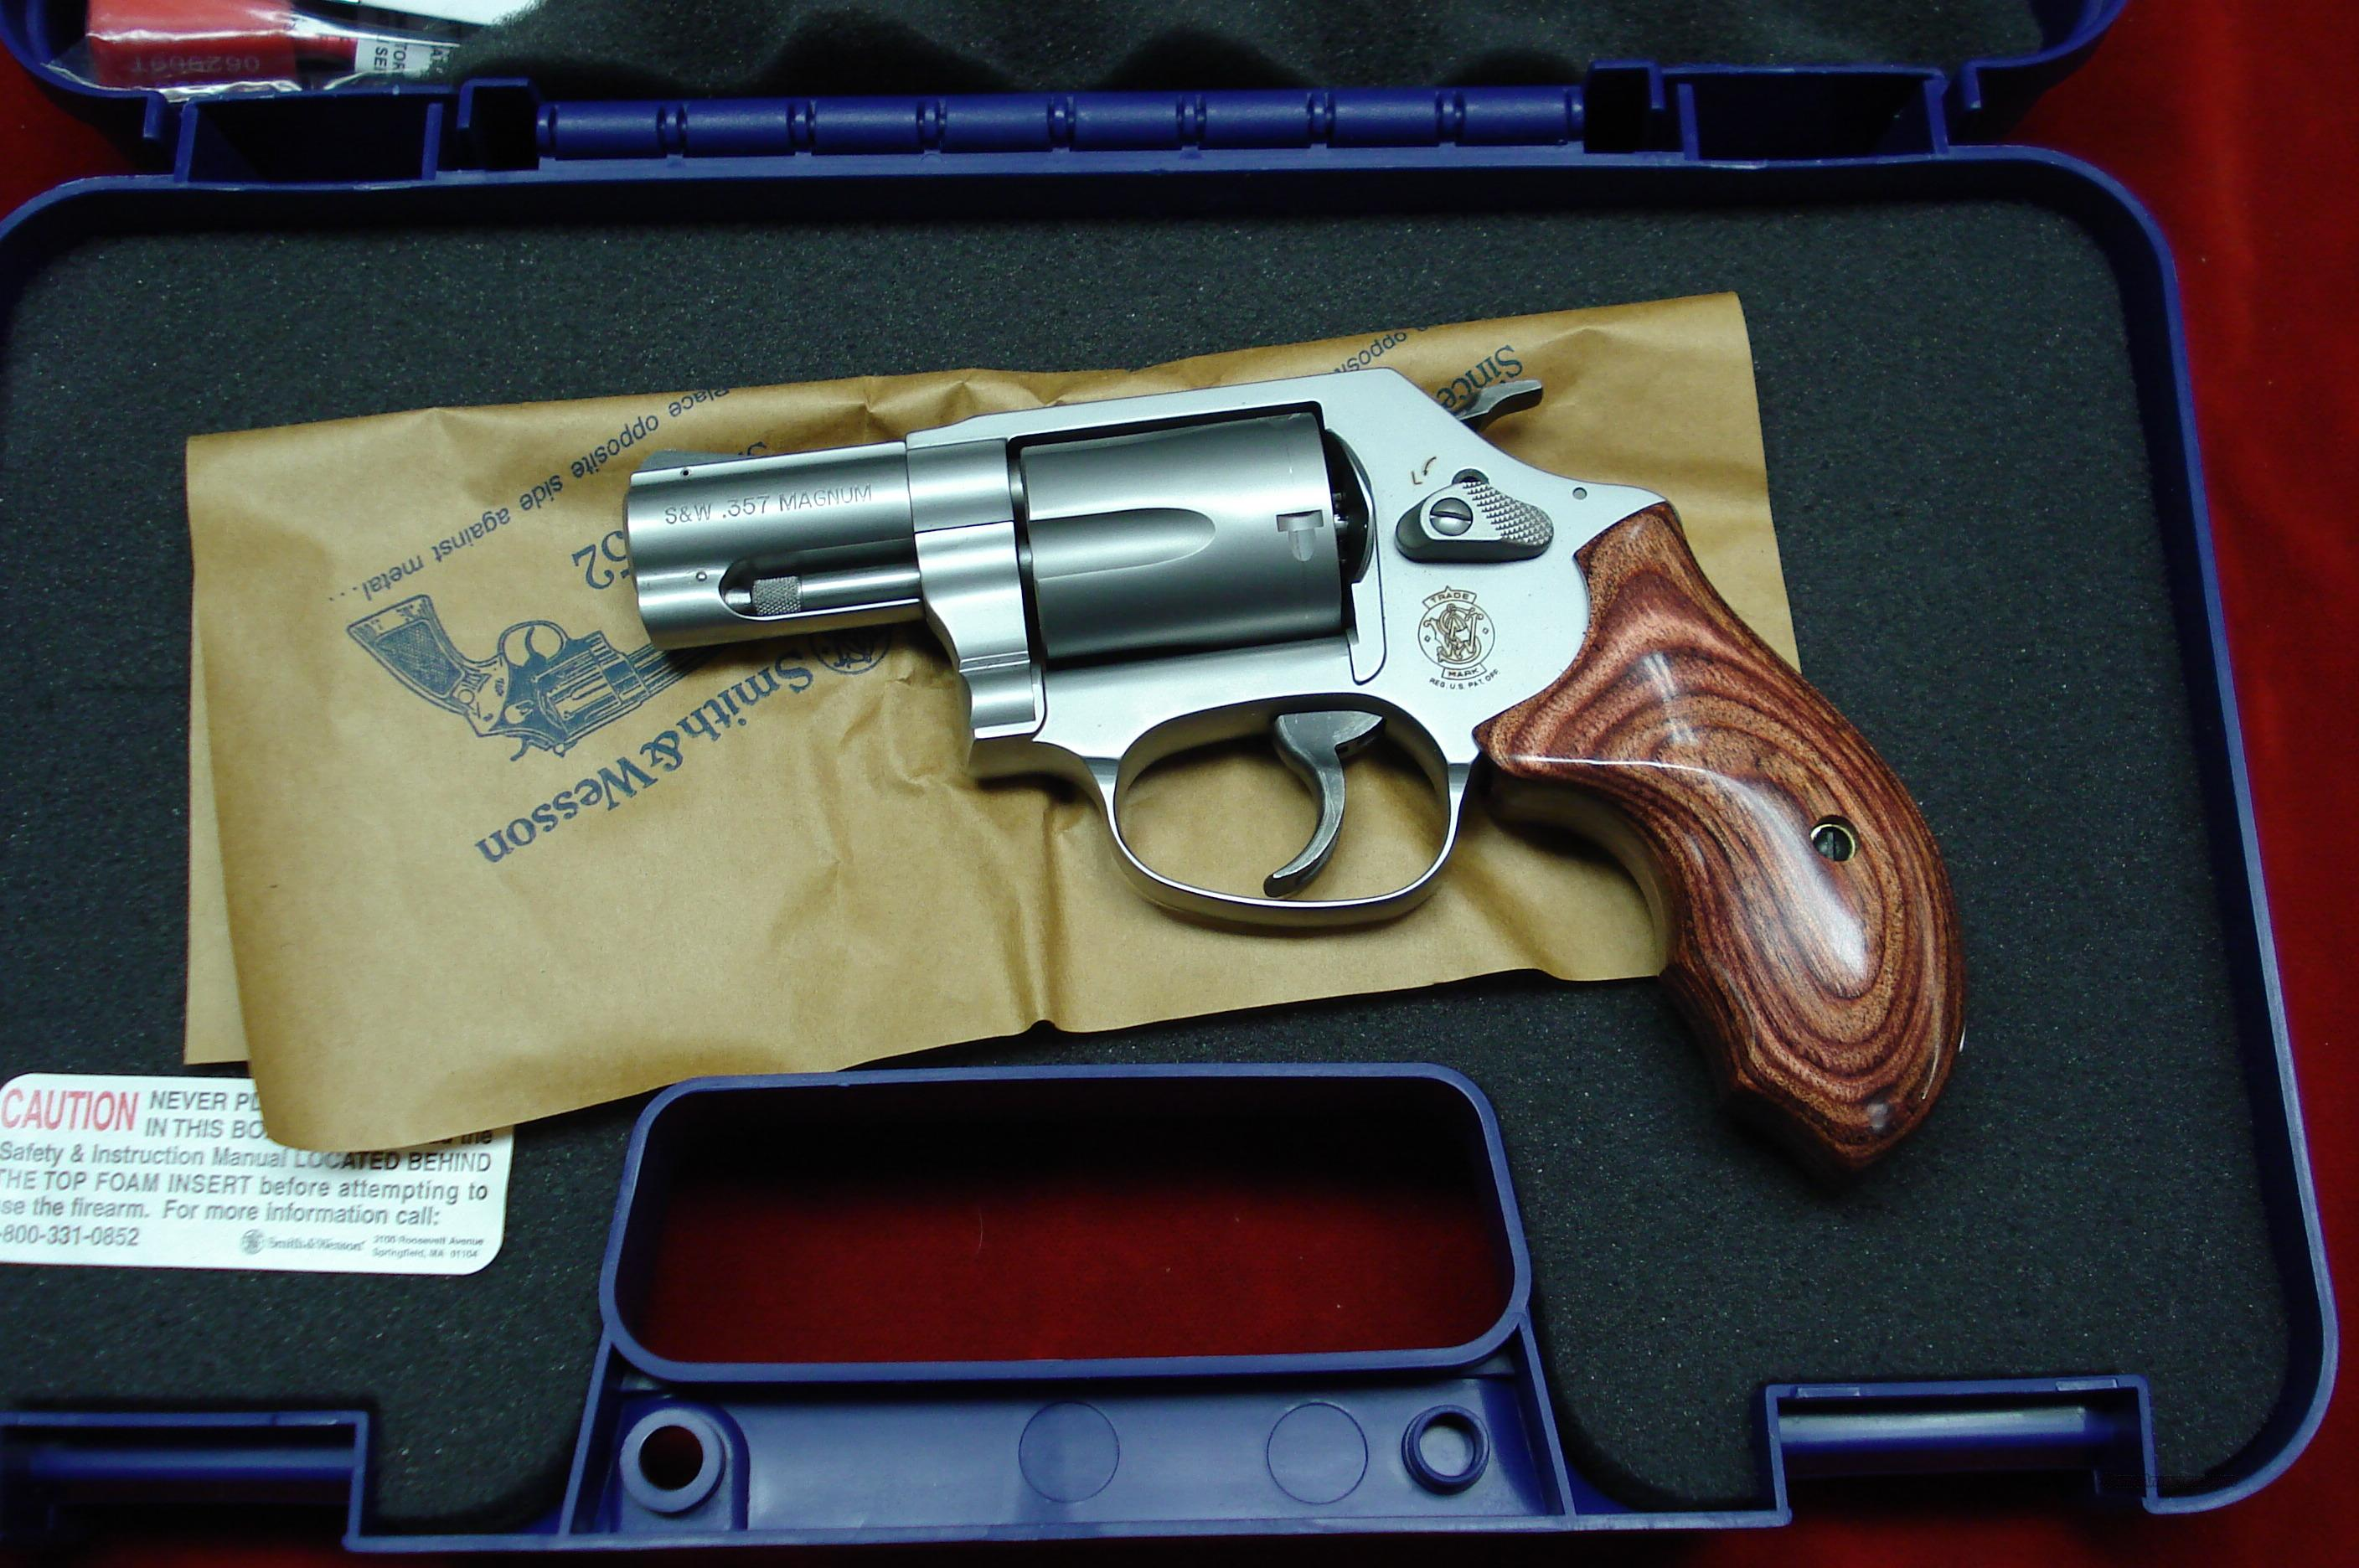 SMITH AND WESSON  MODEL 60LS LADY SMITH 357MAG STAINLESS  NEW  Guns > Pistols > Smith & Wesson Revolvers > Pocket Pistols